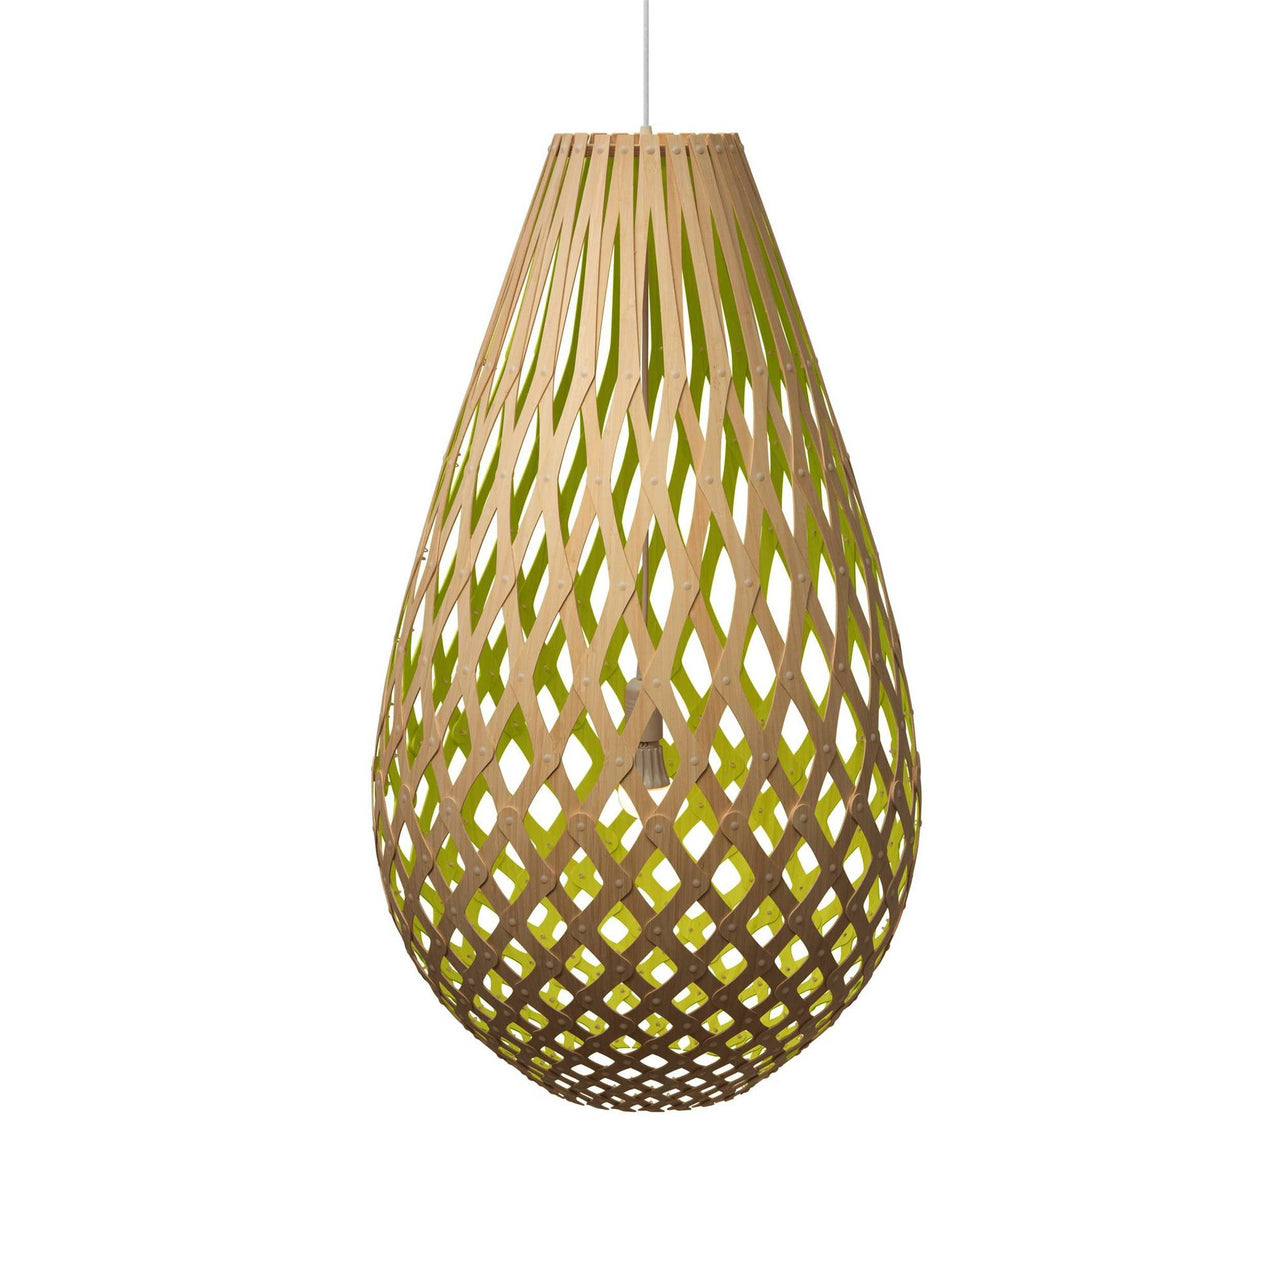 Koura Pendant Light: 1000 + Lime